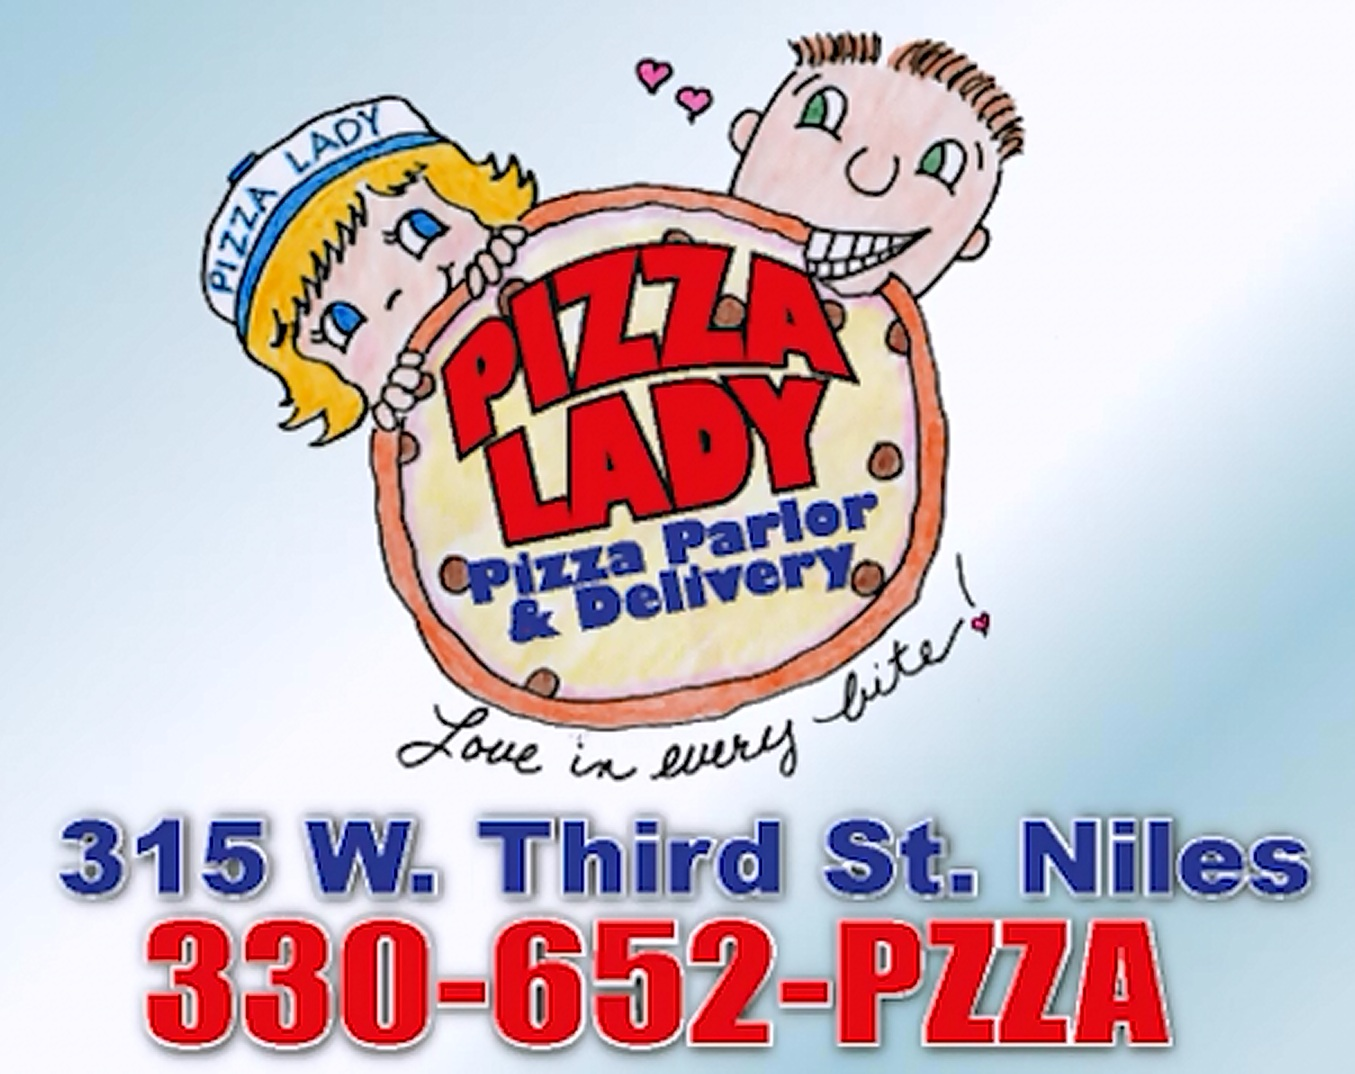 Pizza Lady Pizza Parlor